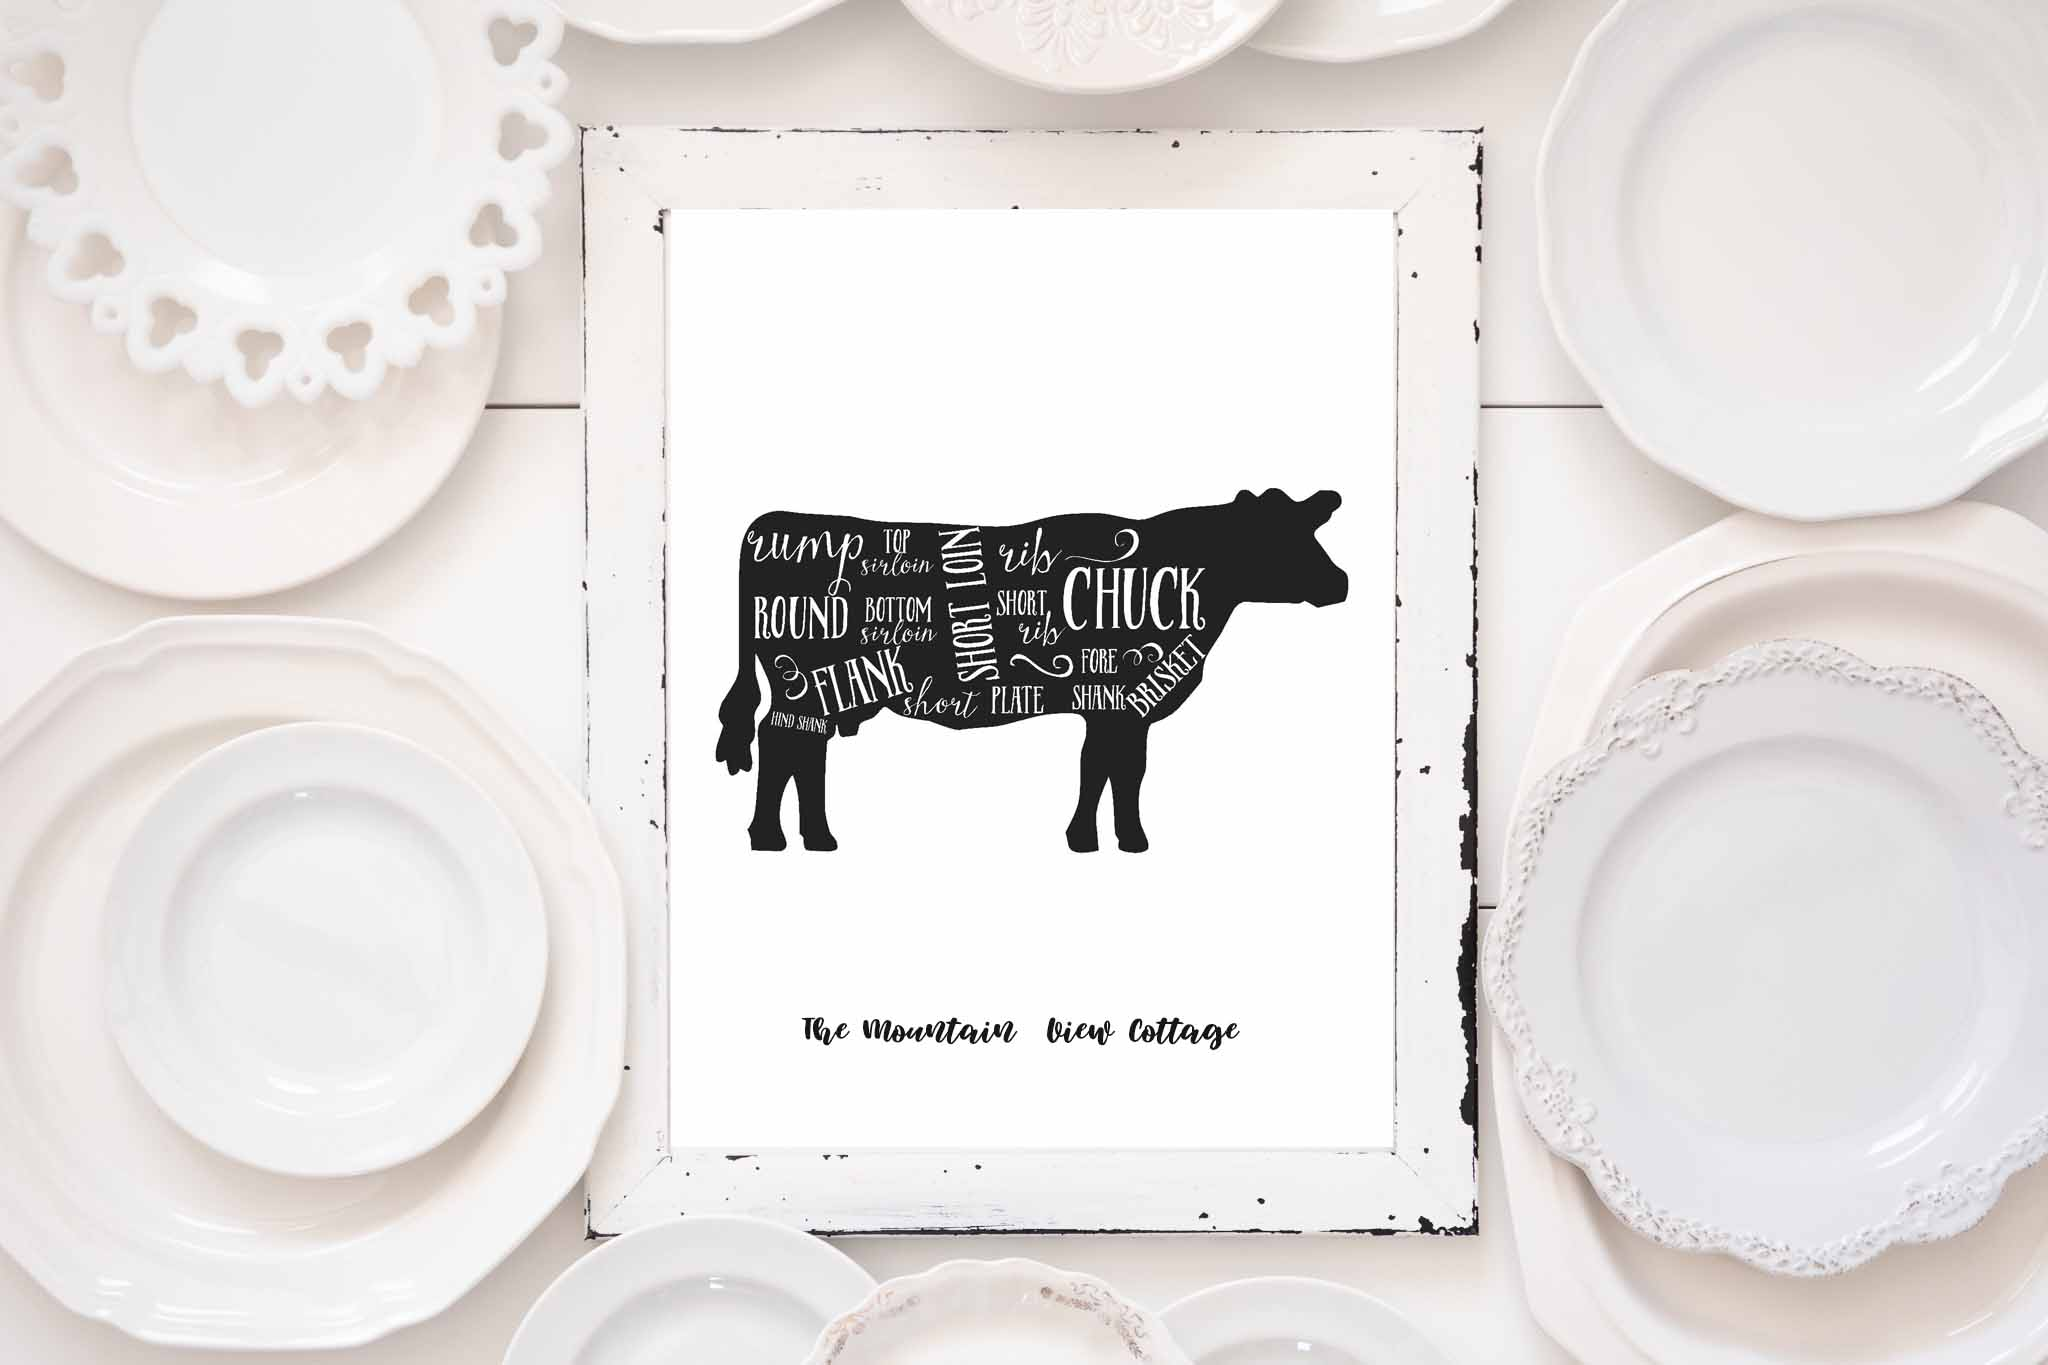 Free Printables-Free Farmhouse Butcher Prints - The Mountain View